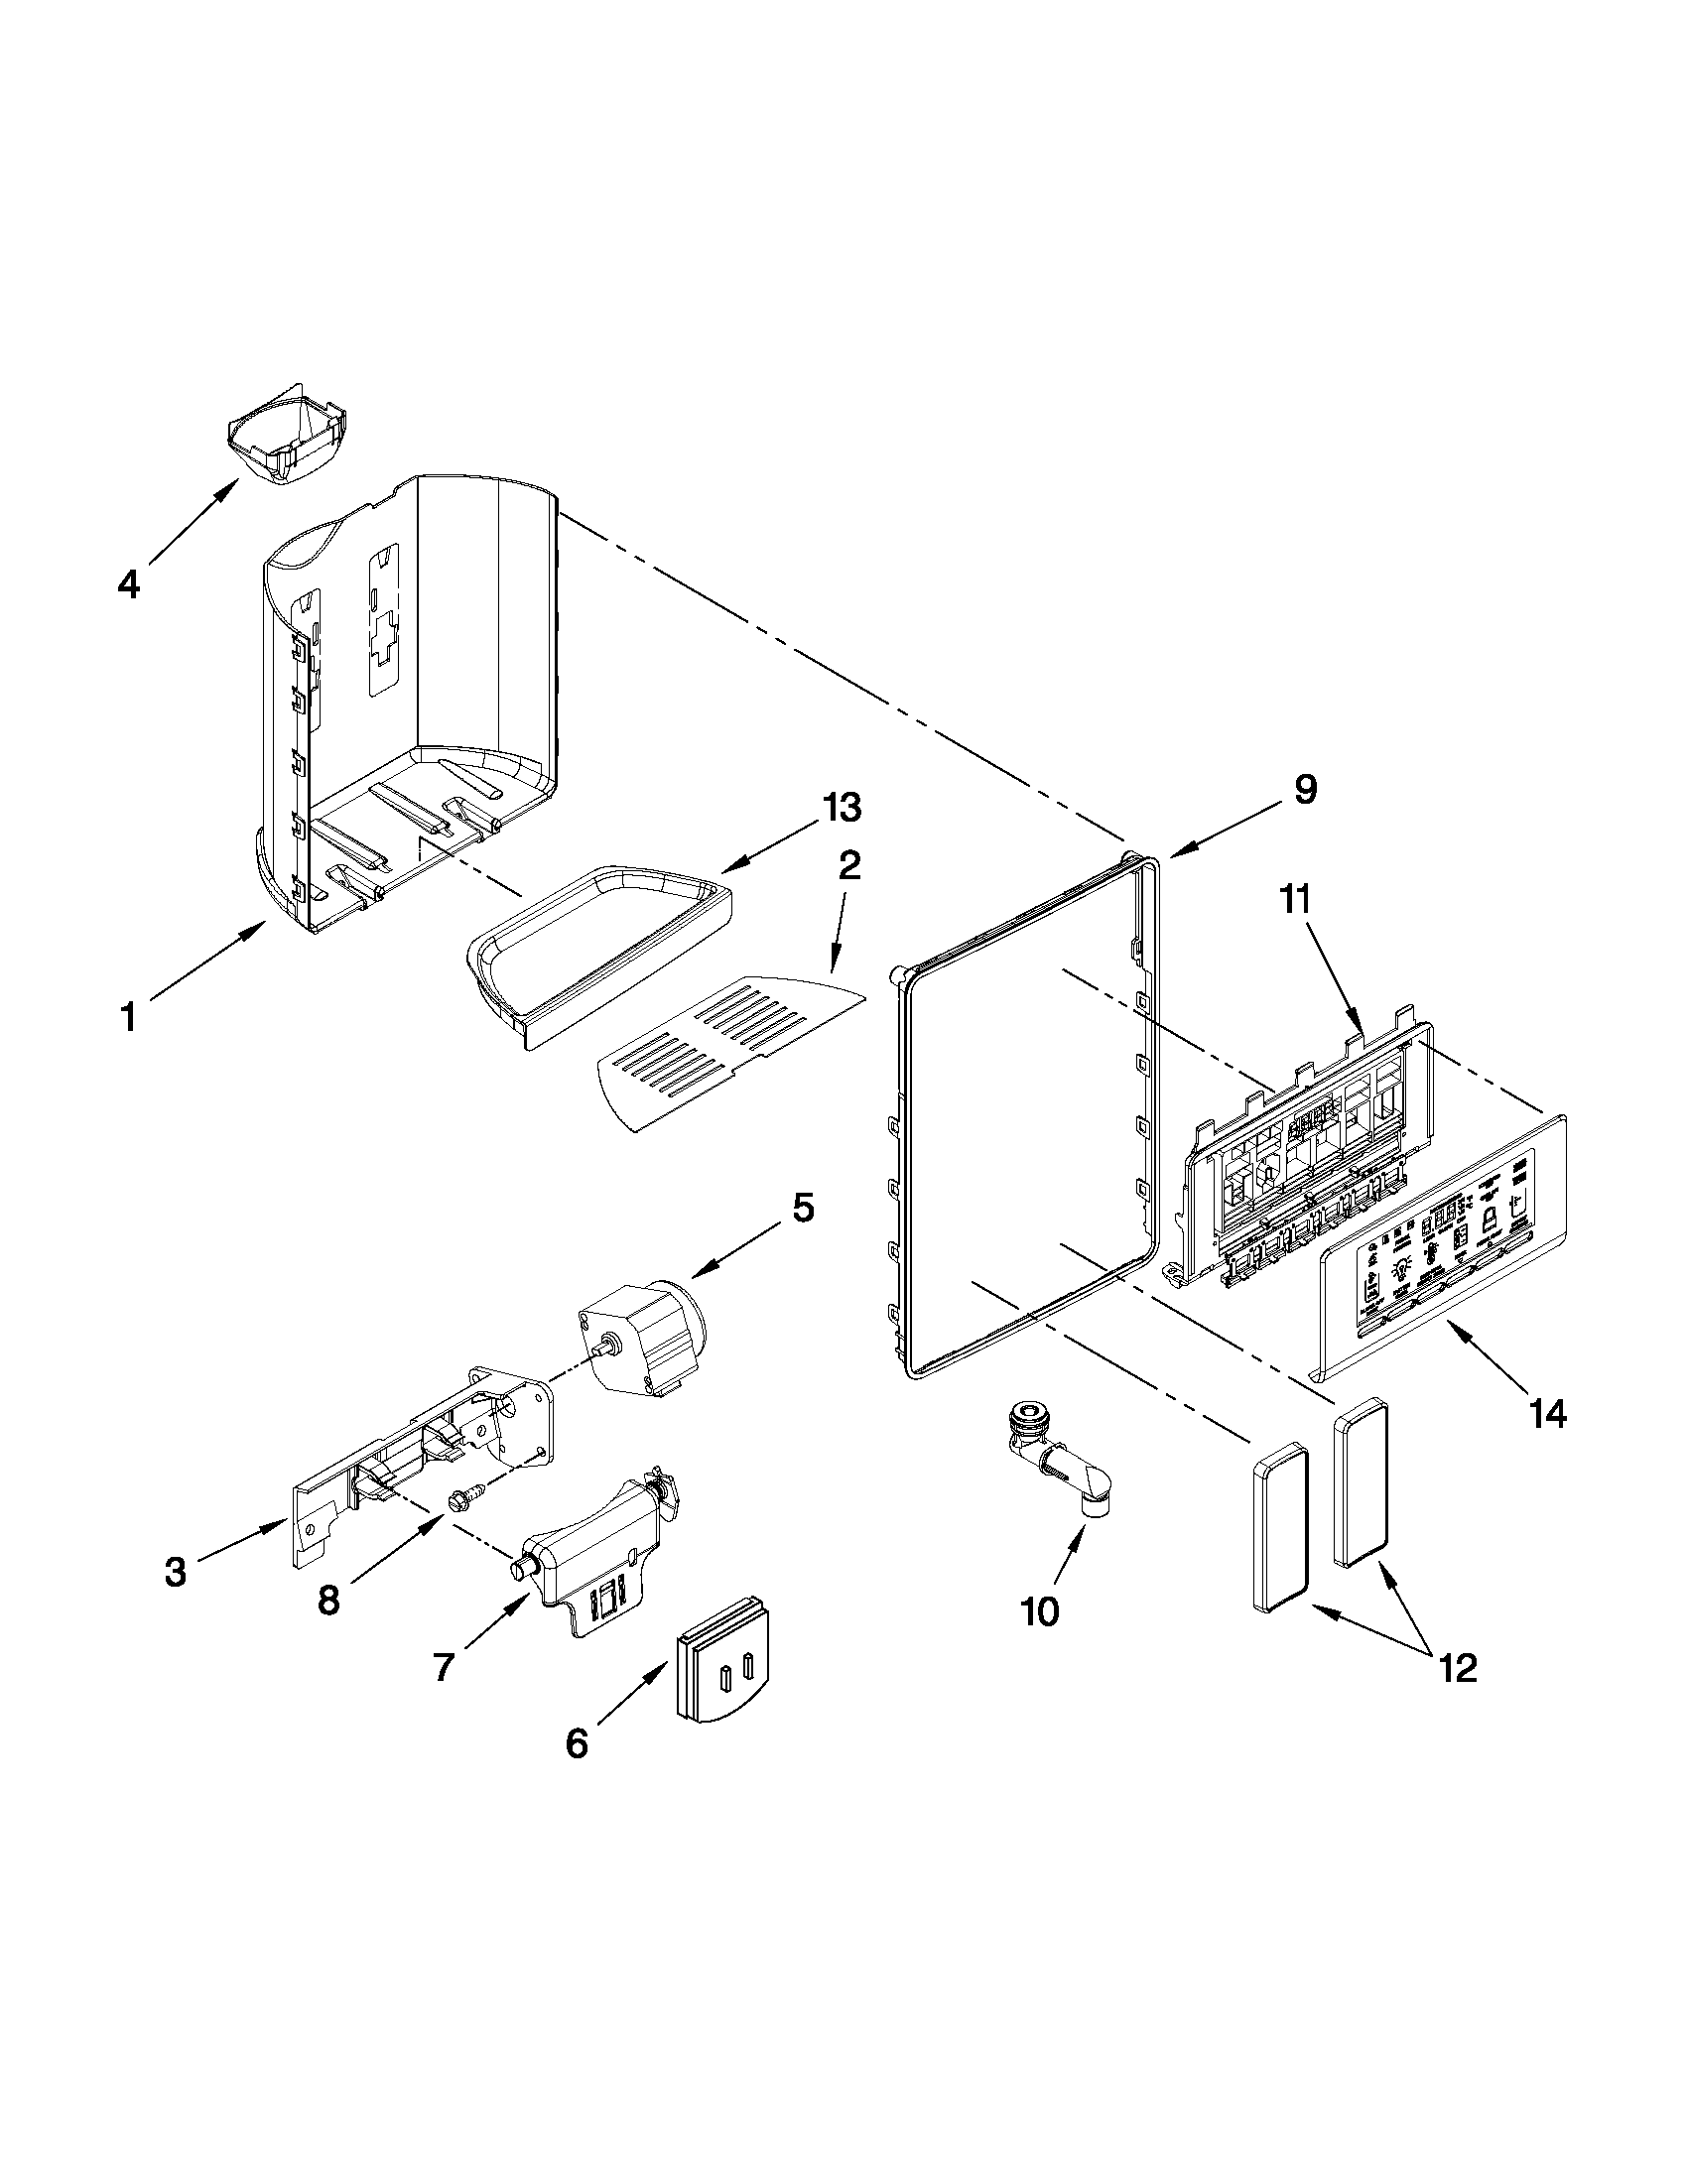 hight resolution of whirlpool gsf26c4exb02 dispenser front parts diagram